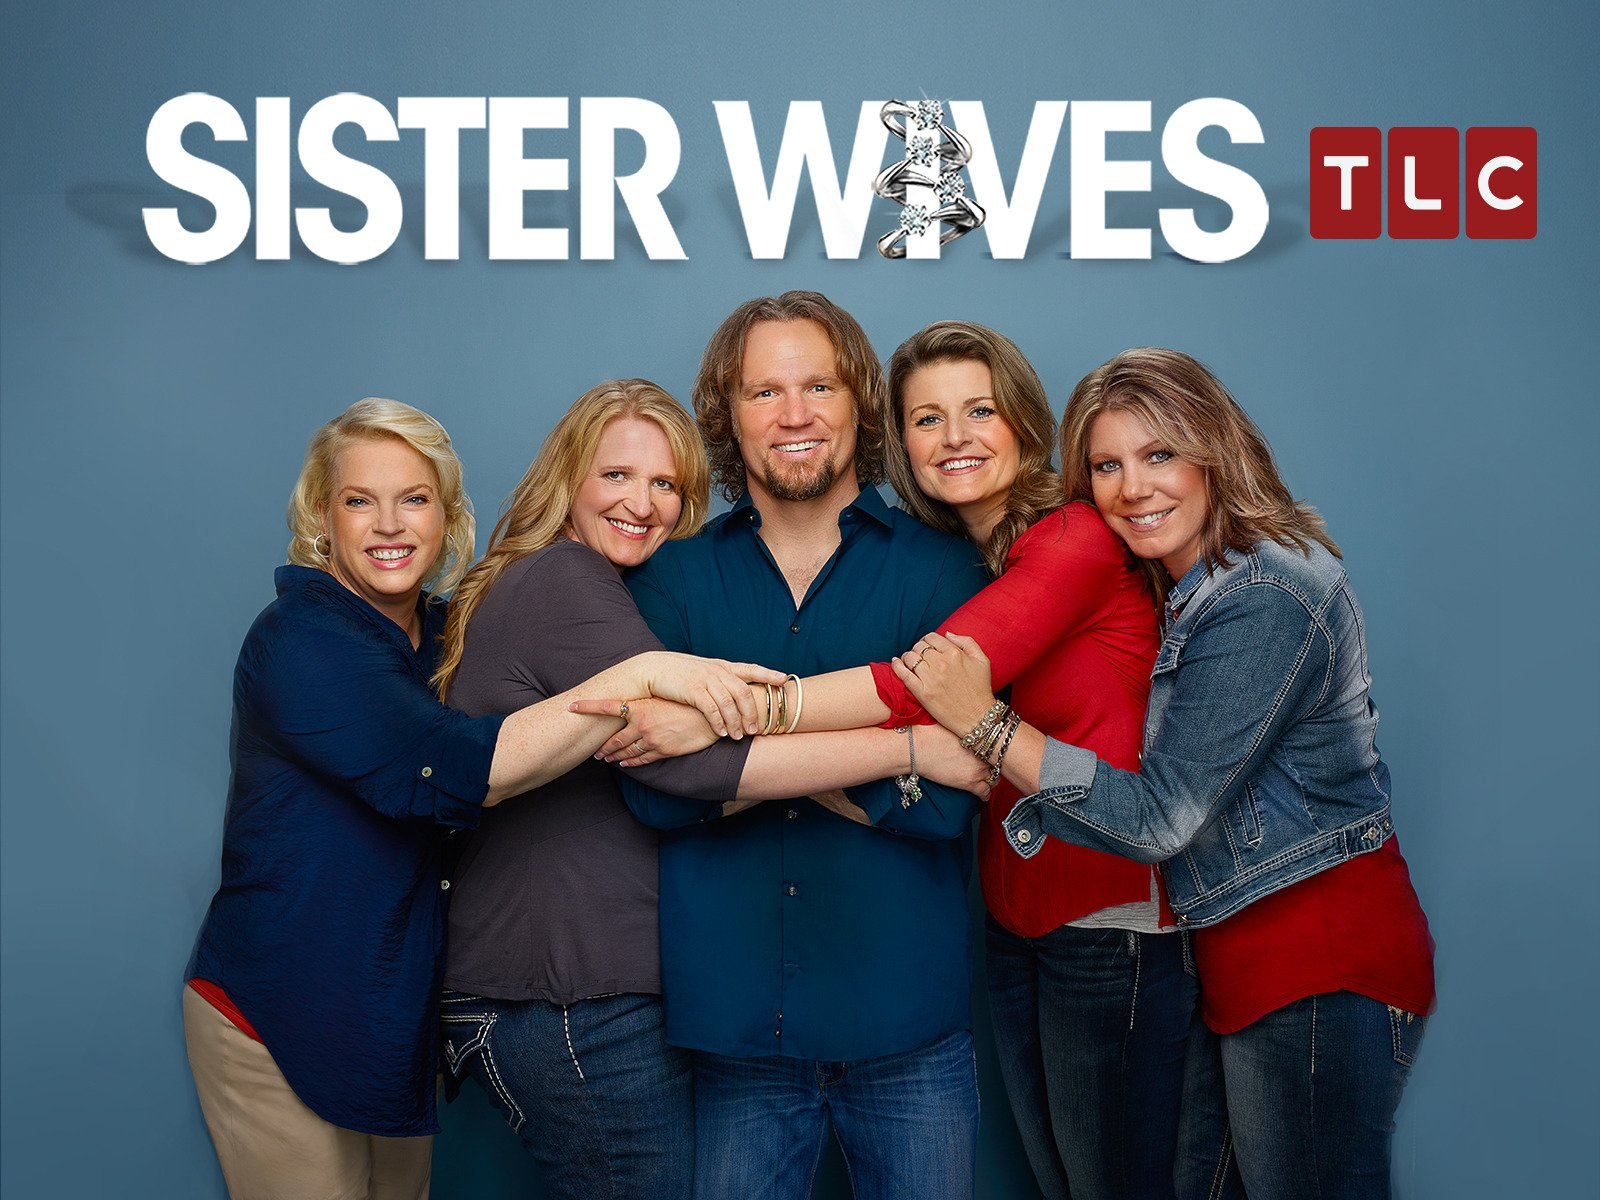 TLC Sister Wives Star Ysabel Brown On A New Chapter Shares Same Love As Sister Maddie!